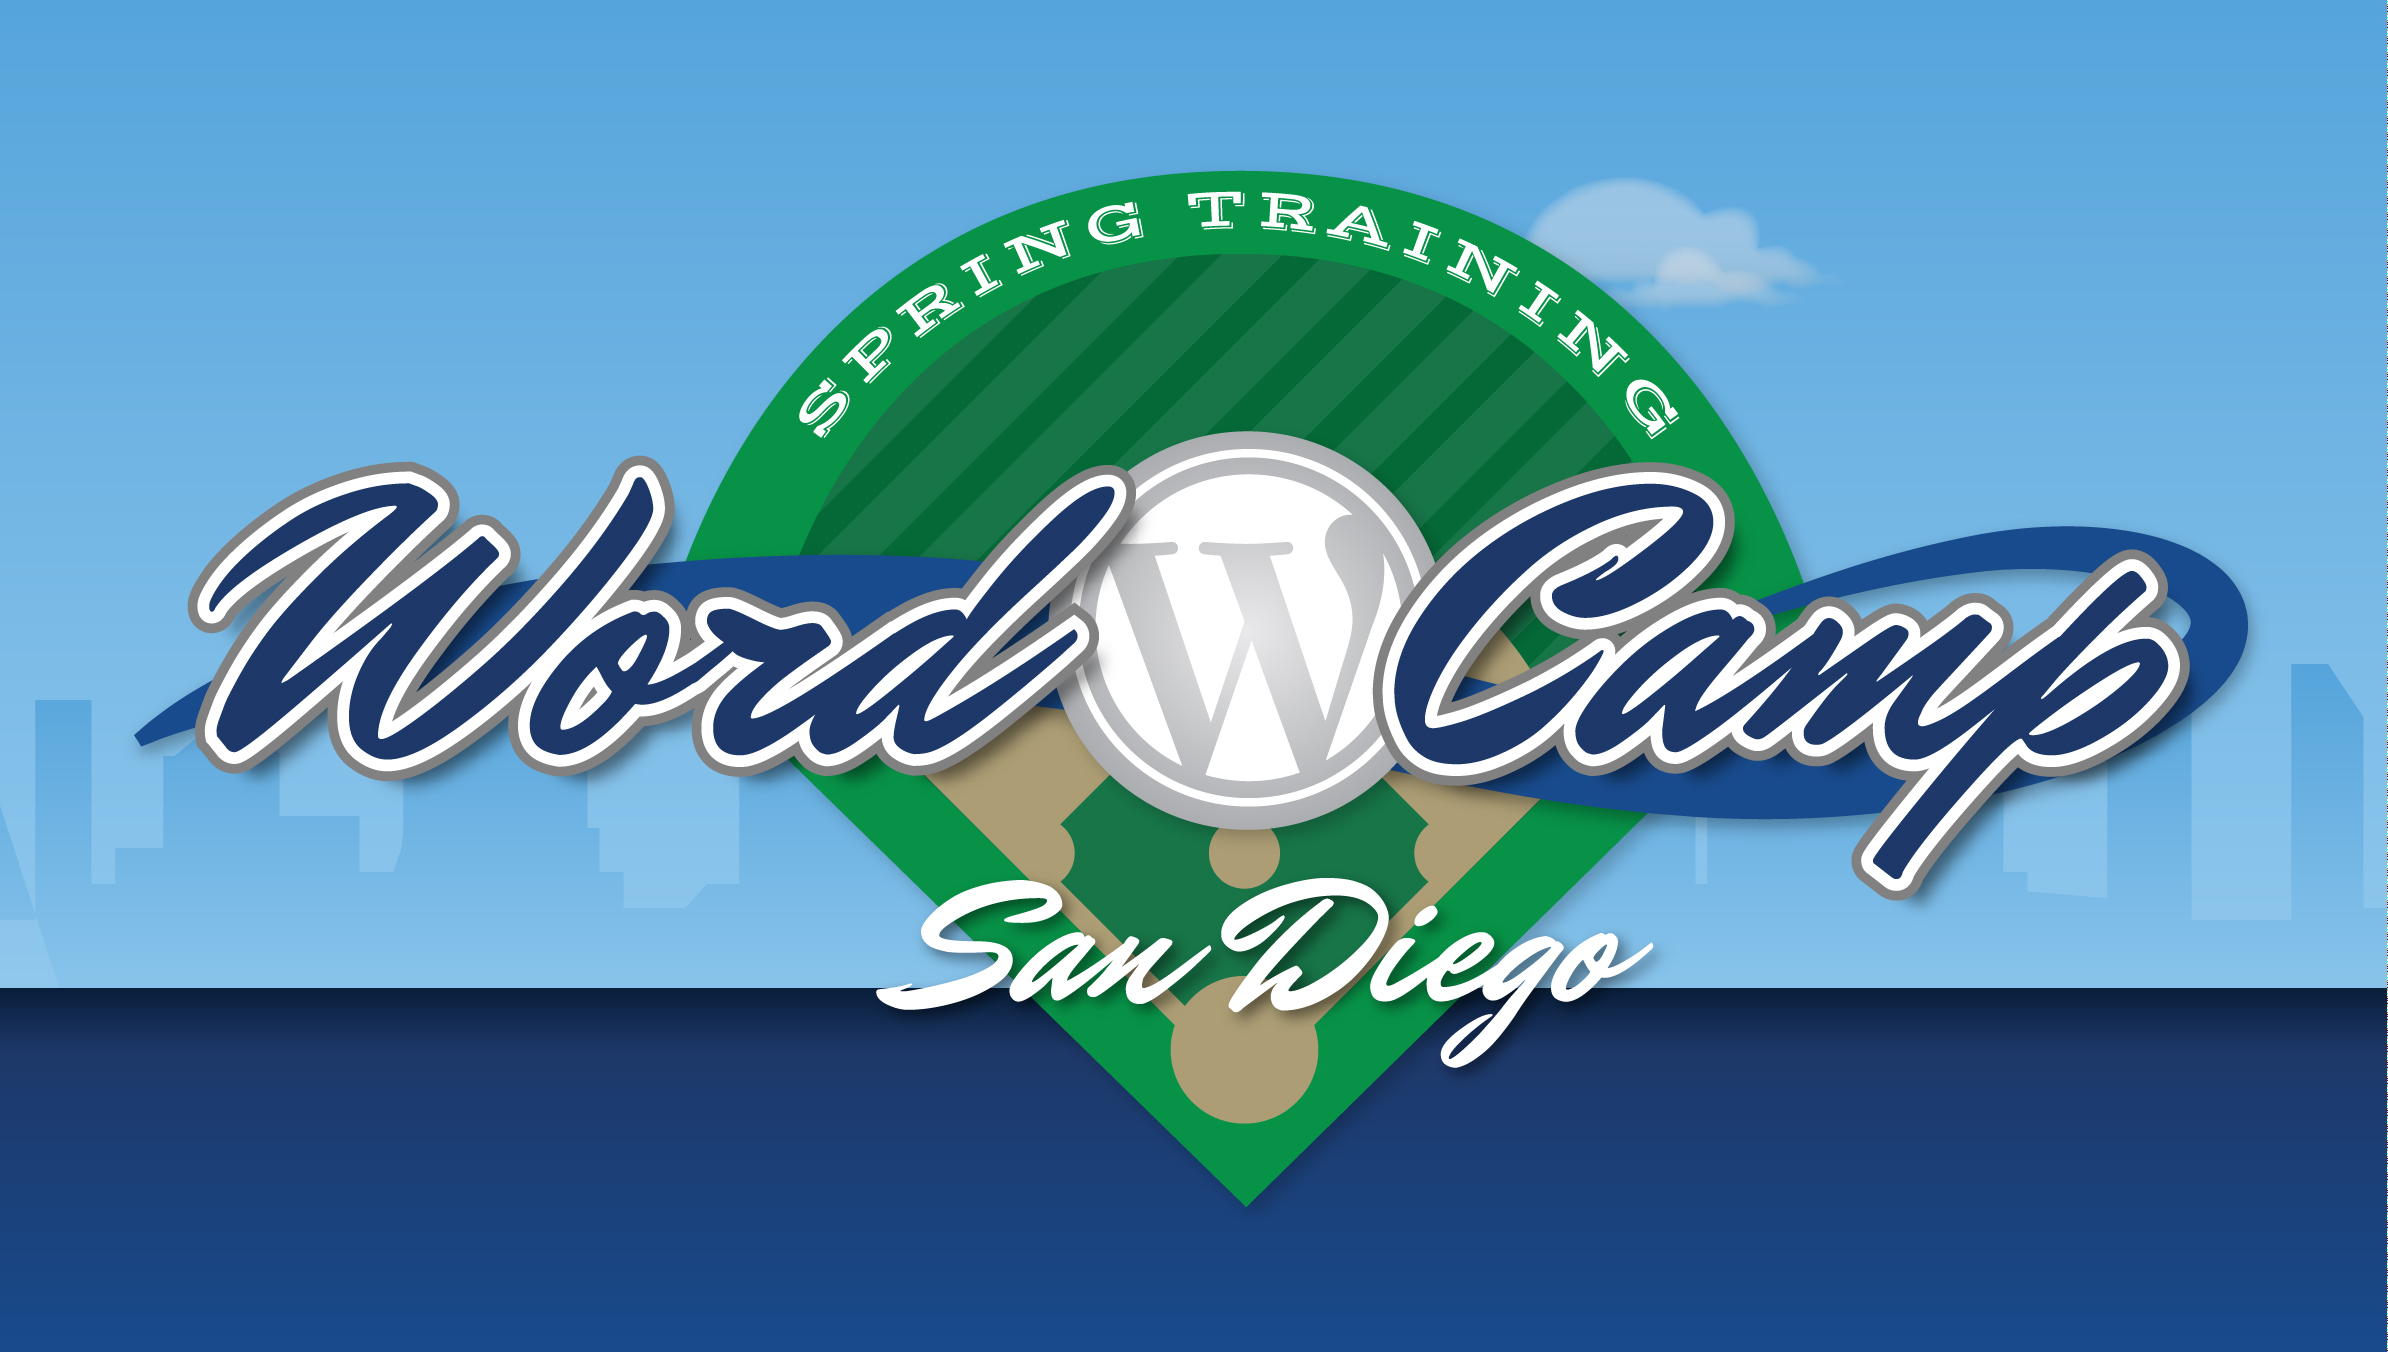 Wordpress Training Banners Style Banners